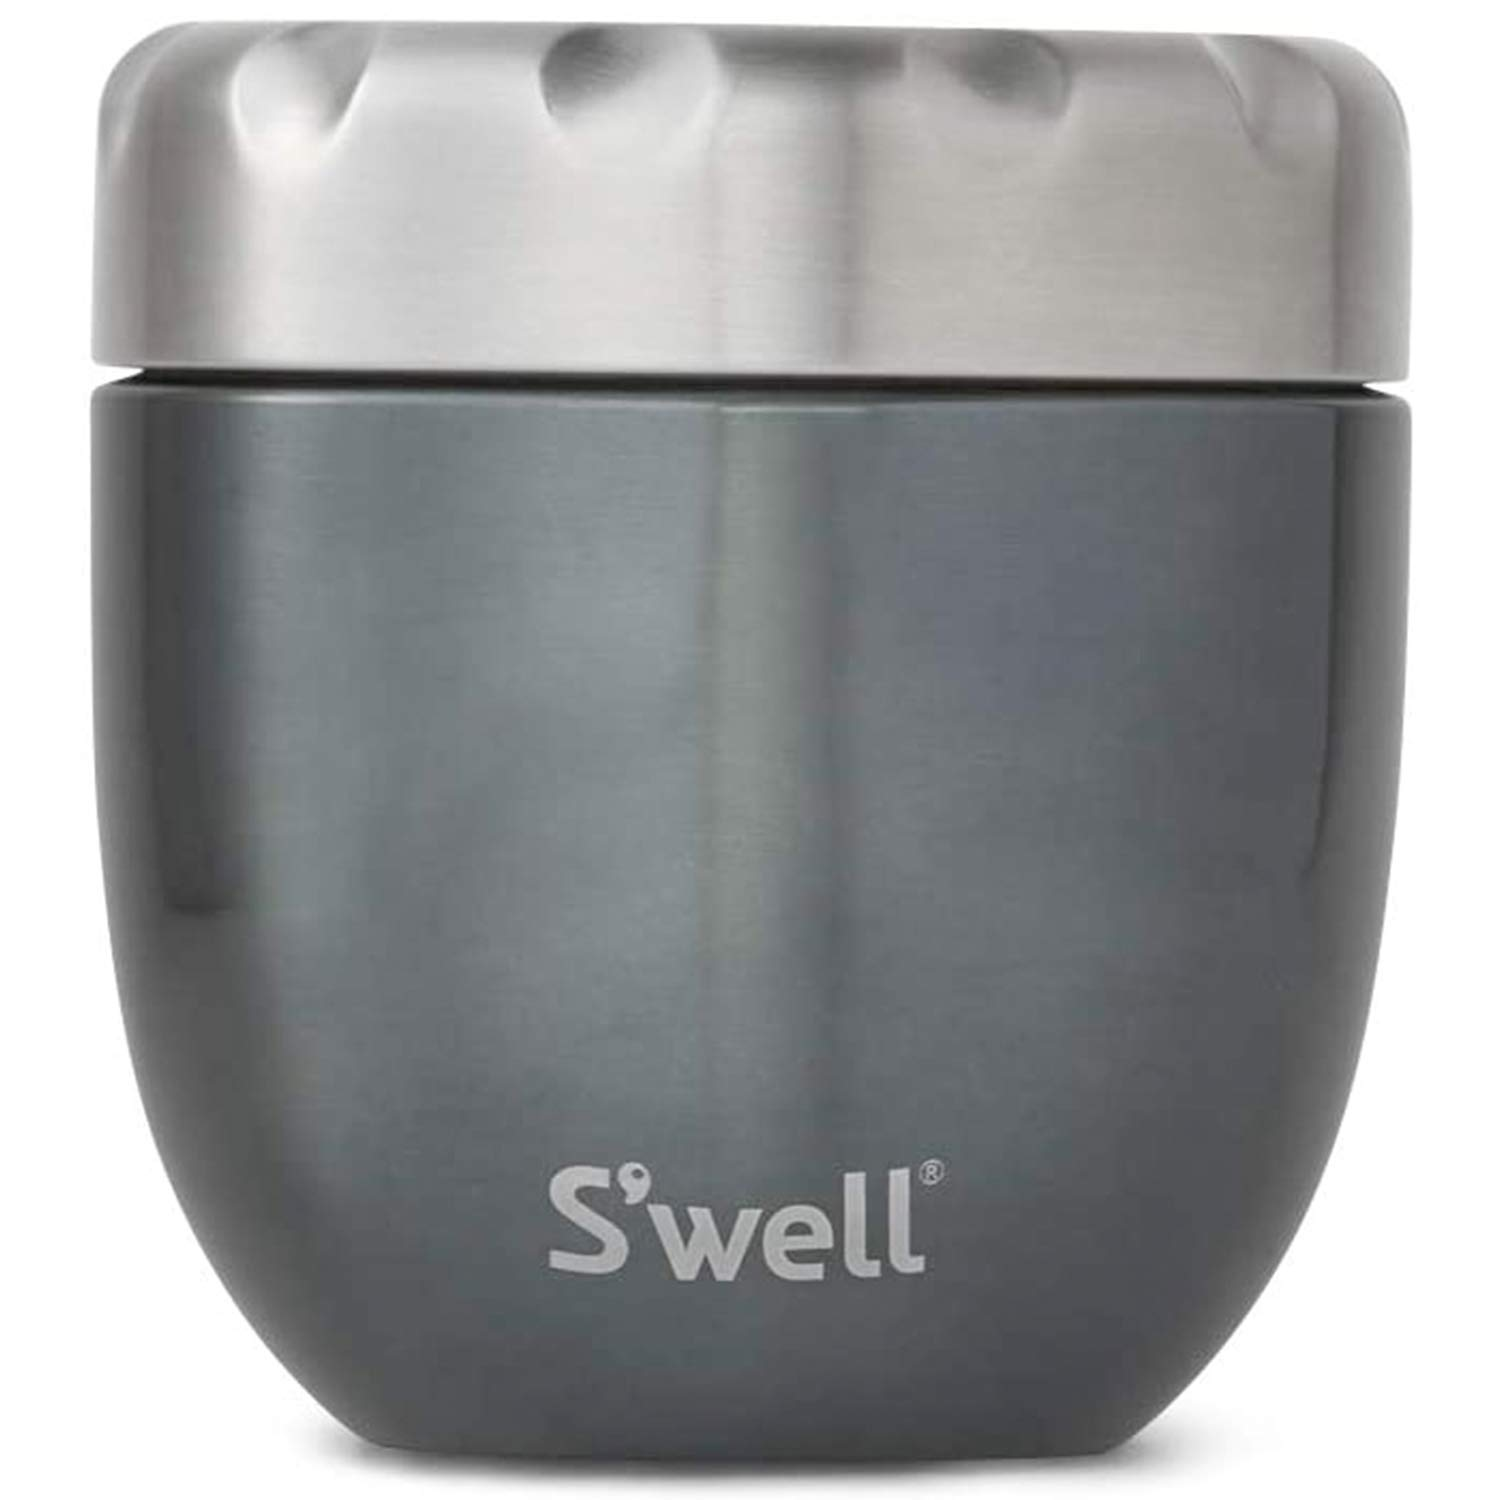 S'well Eats 16oz 2-IN-1 Nesting Food Bowl with 10oz Prep Bowl, Blue Suede (12814-B19-42540)